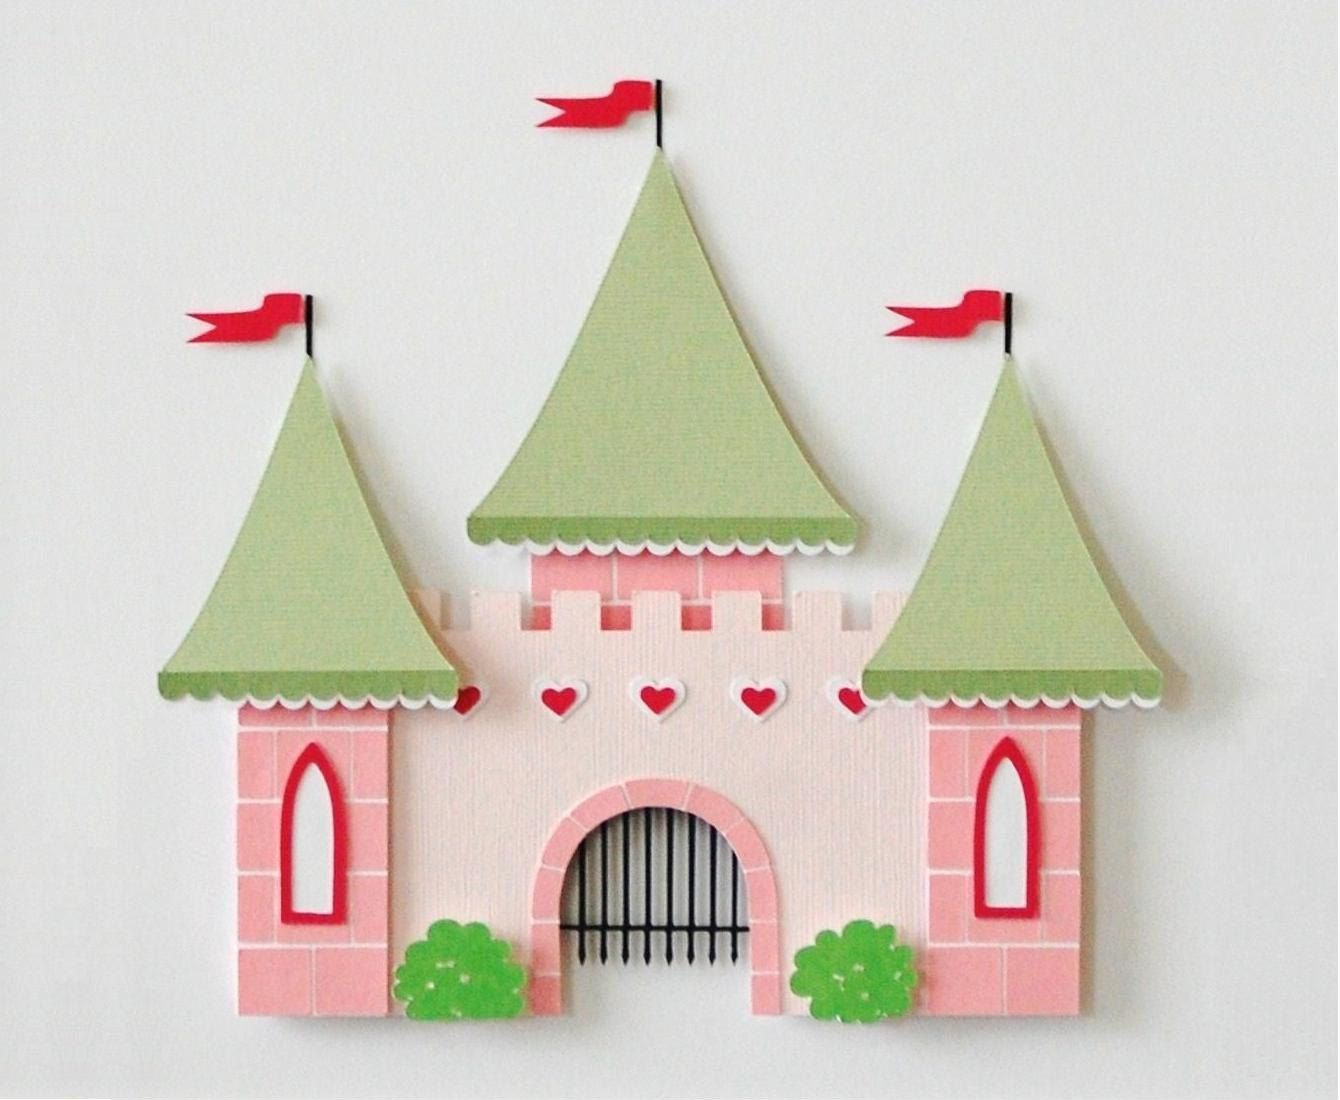 Castle Fairy Tale Decor Kids Wall Decor Princess Theme Matted Art Custom  Decor Pink Green Castle